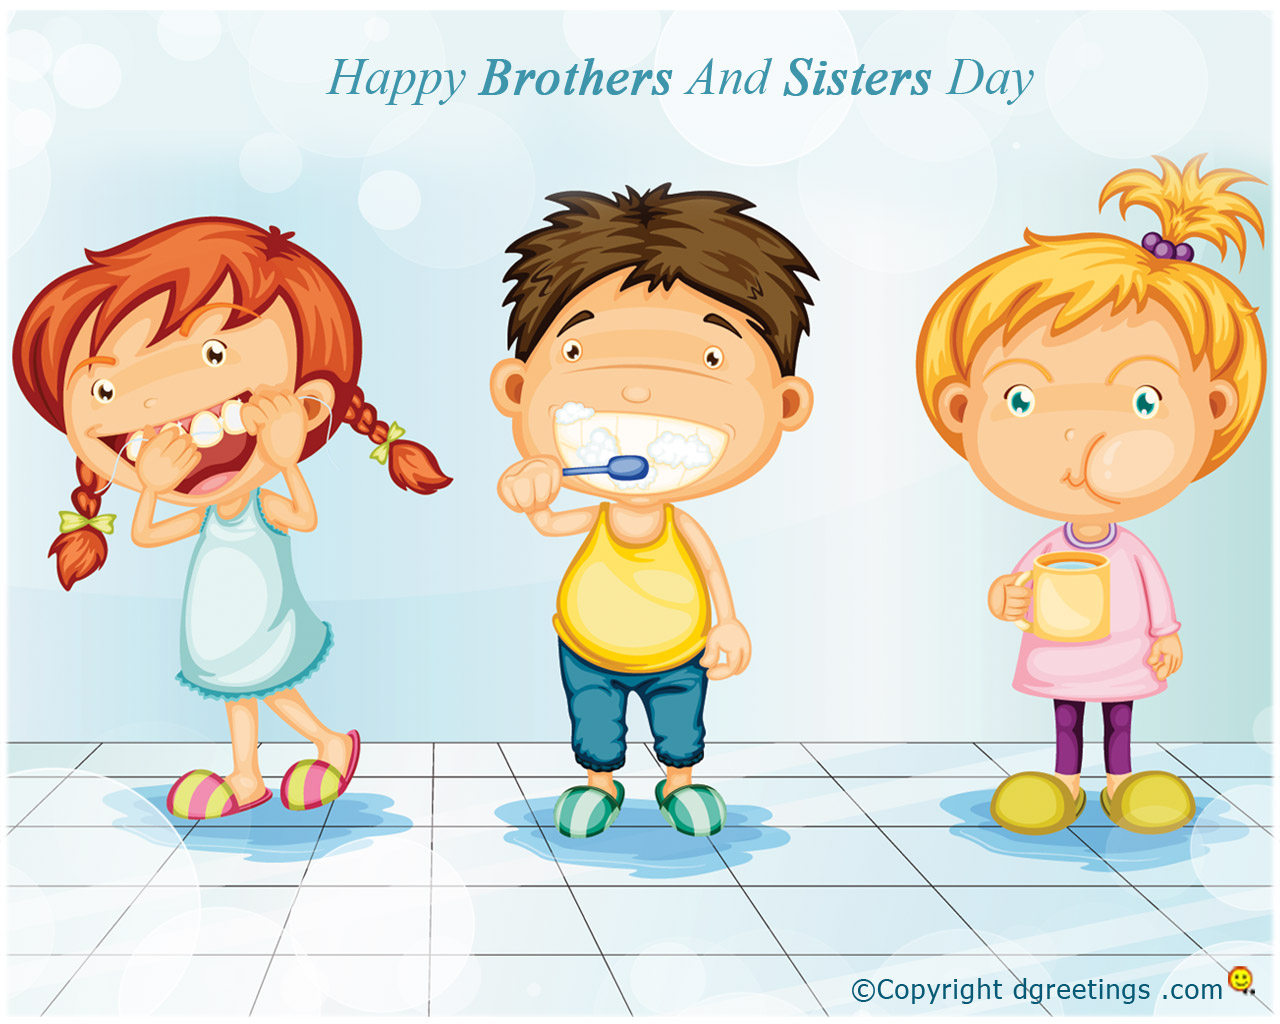 Brothers and Sisters Day Wallpapers 1280x1024